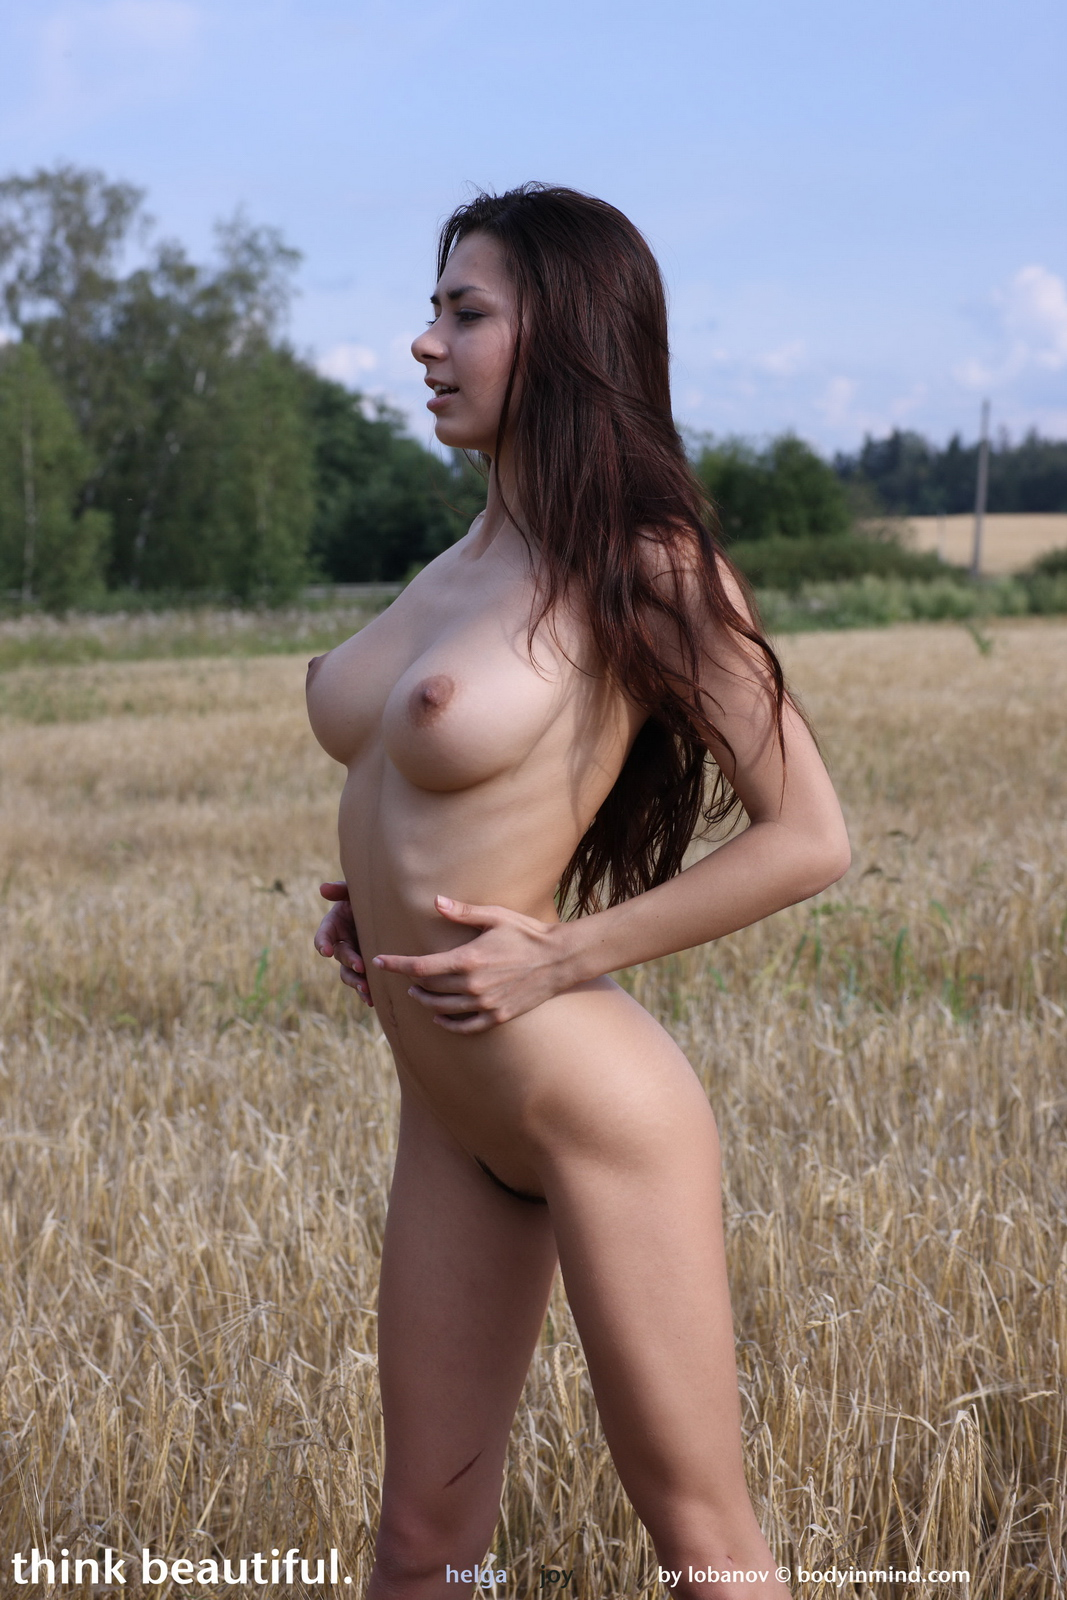 helga-boobs-nude-field-grain-bodyinmind-39